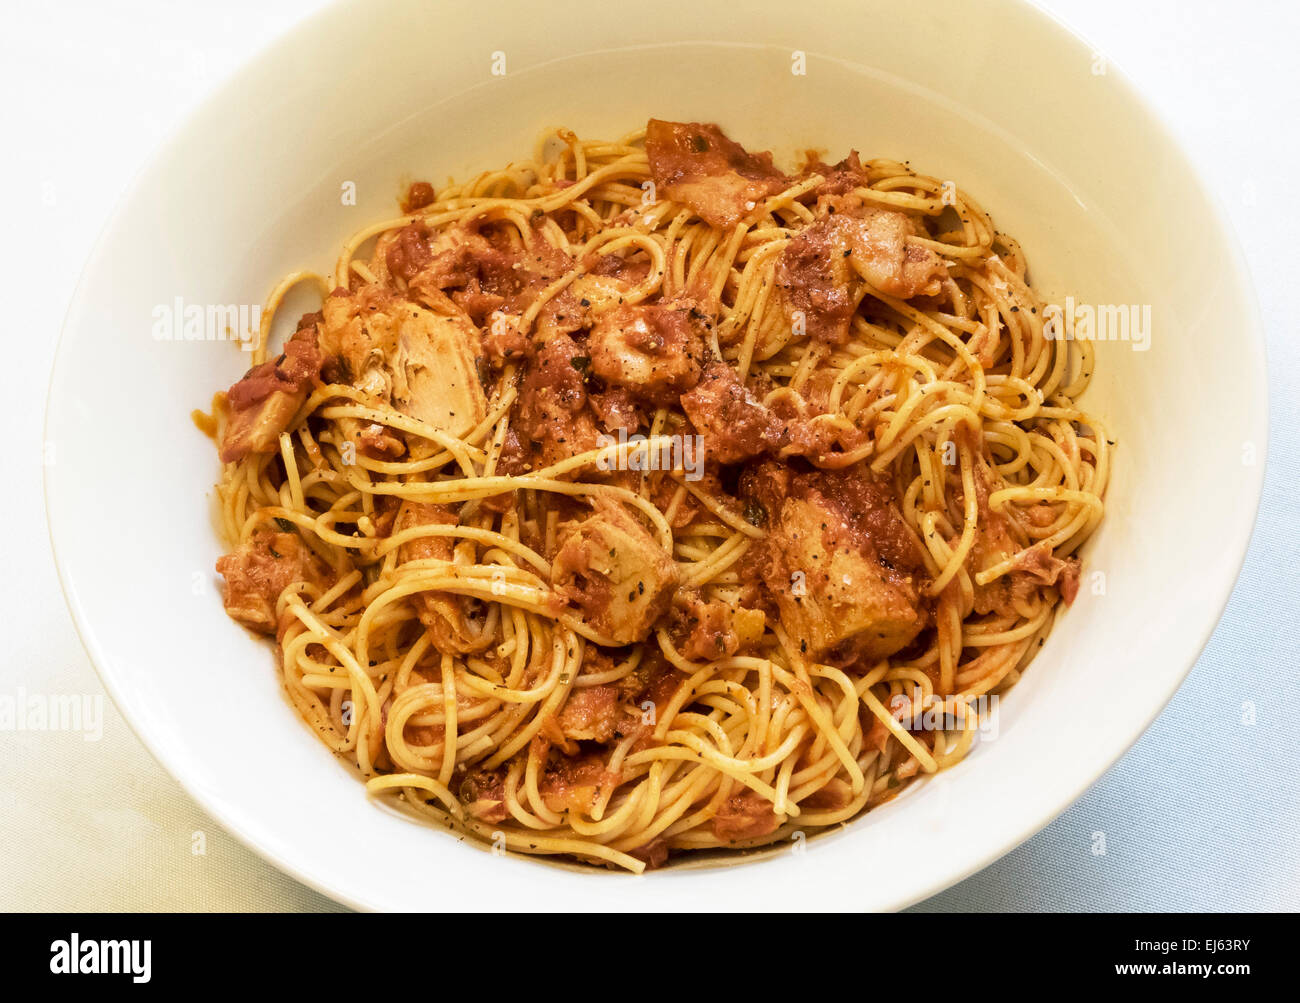 Spaghettis au thon et sauce tomate et bacon Photo Stock